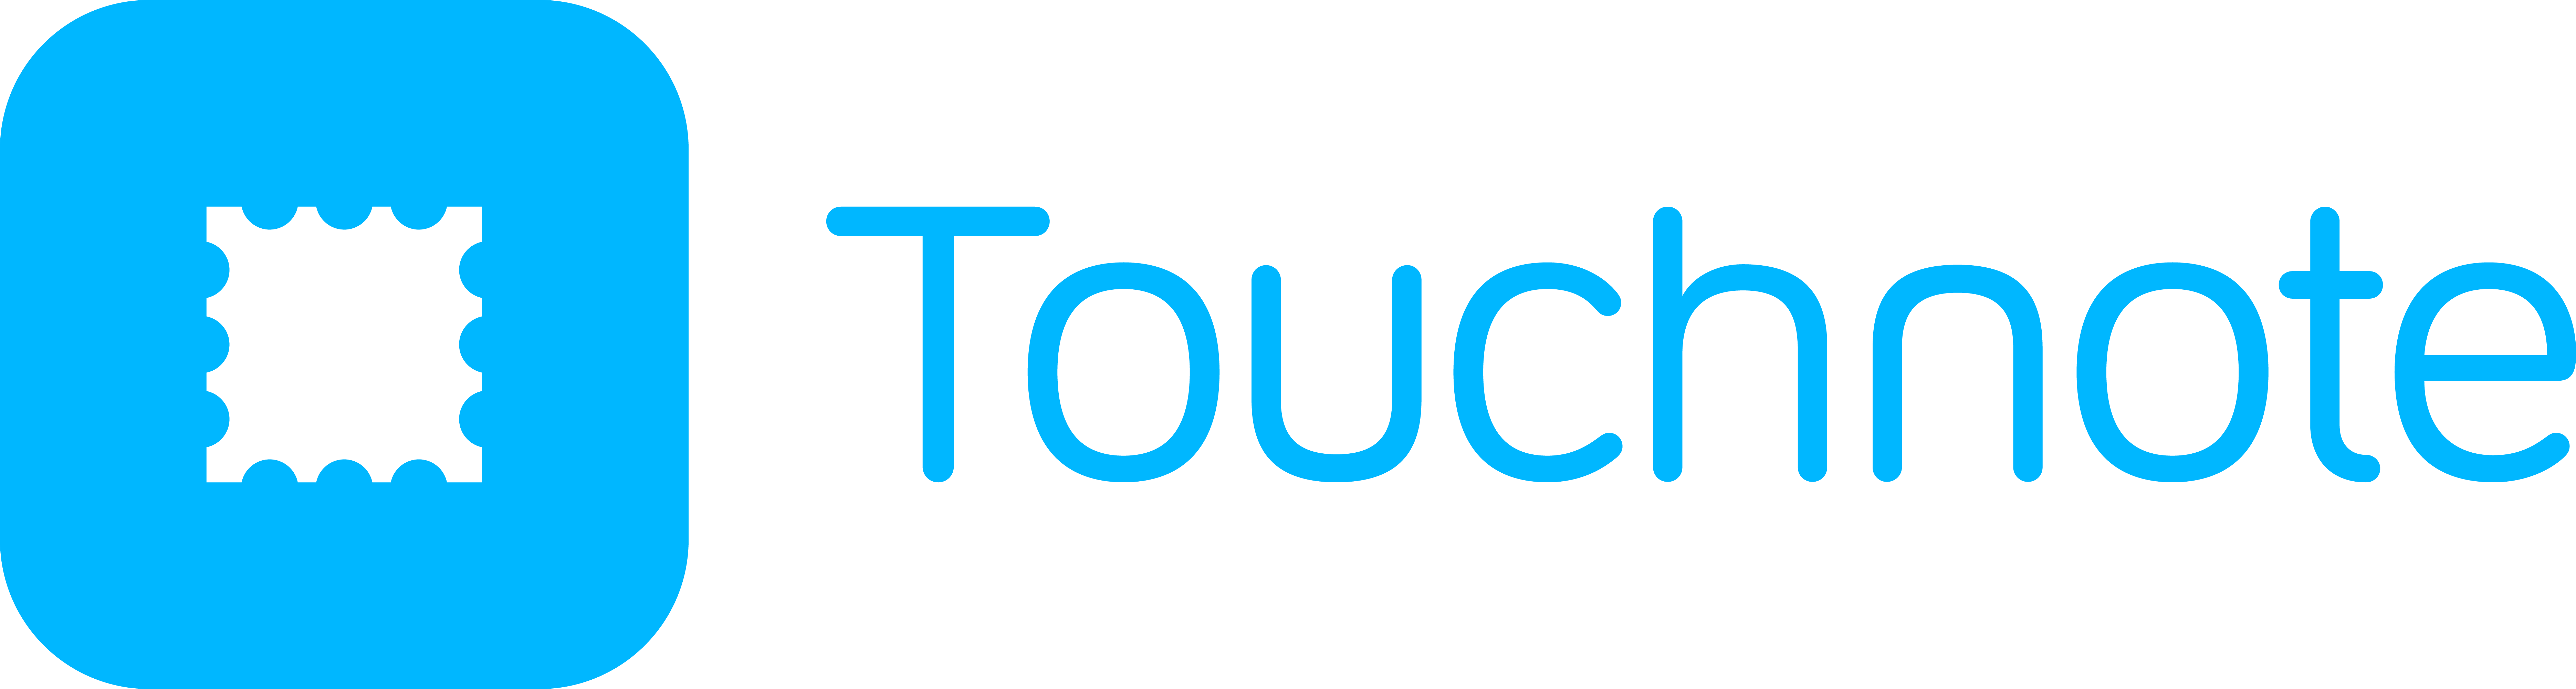 Touchnote: The app-based postman simplifying the way we send cards to friends and family